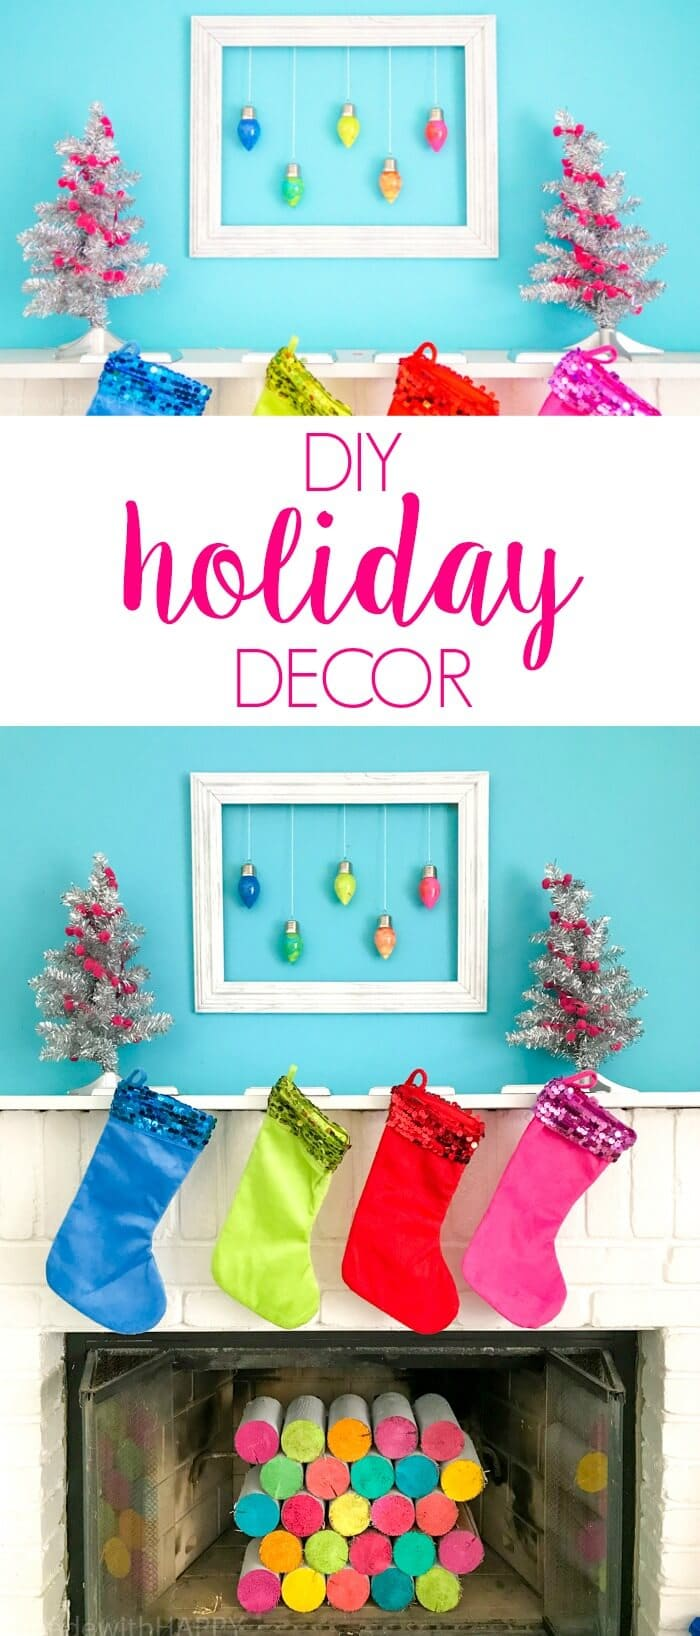 DIY Holiday Decor. Modern Colorful Christmas Decoration Ideas. Marbled Holiday Ornaments, along with pink christmas decorations make for a HAPPY holiday. www.madewithhappy.com